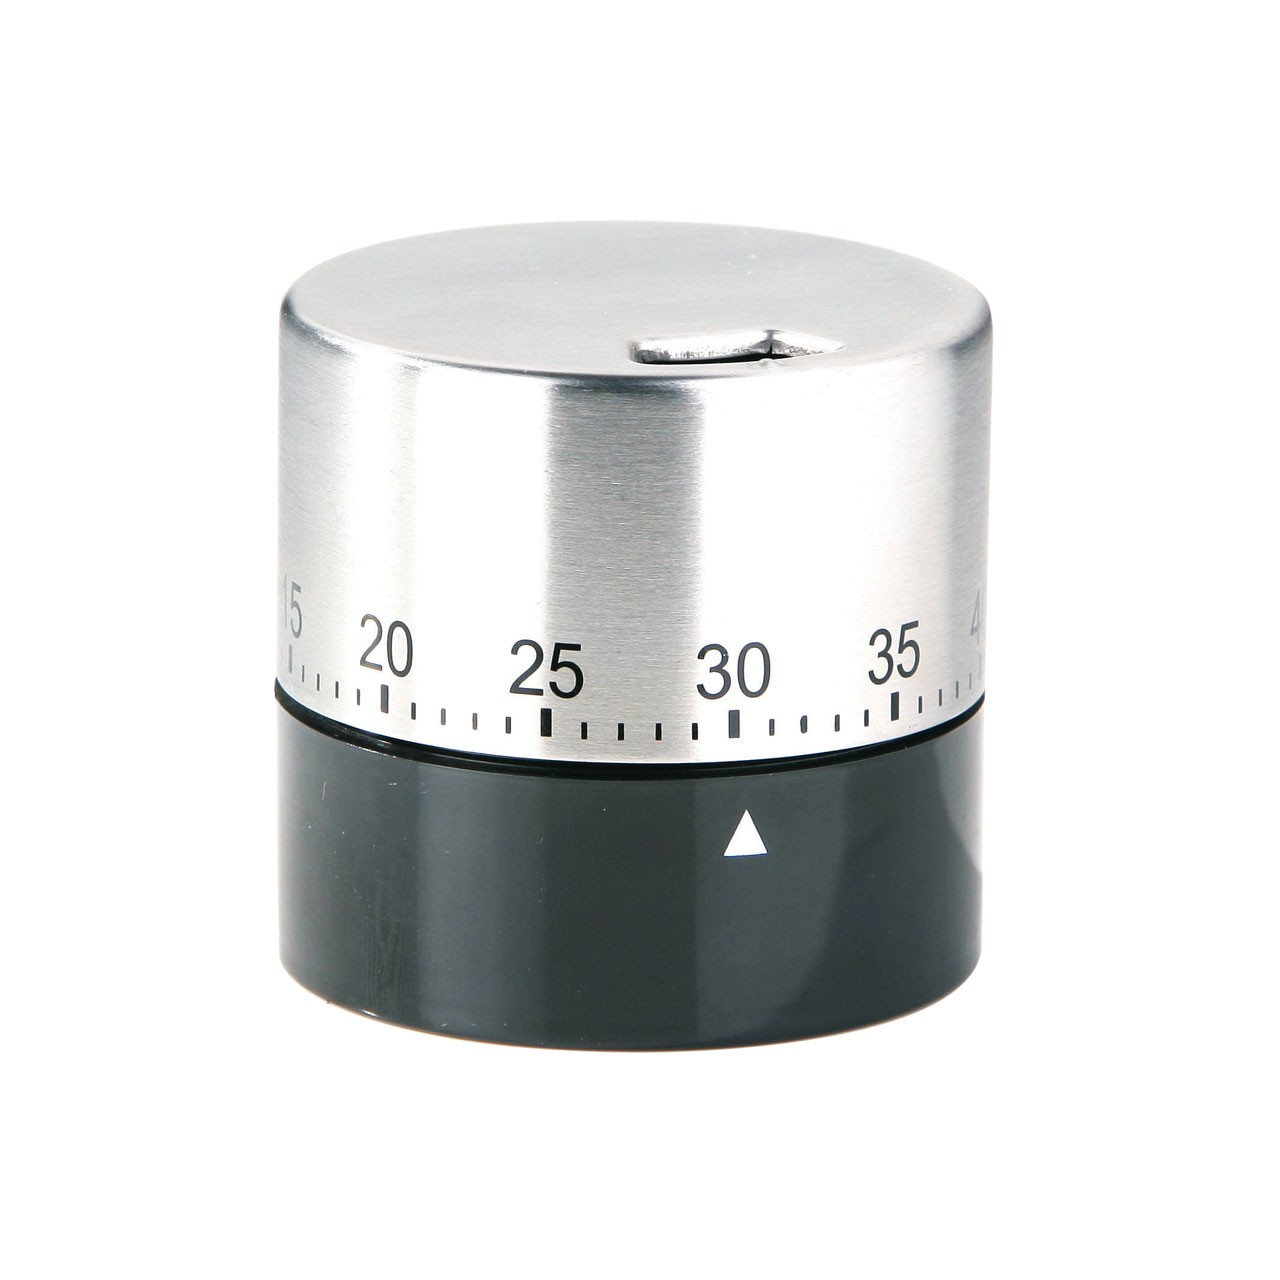 Cylinder Timer Stainless Steel